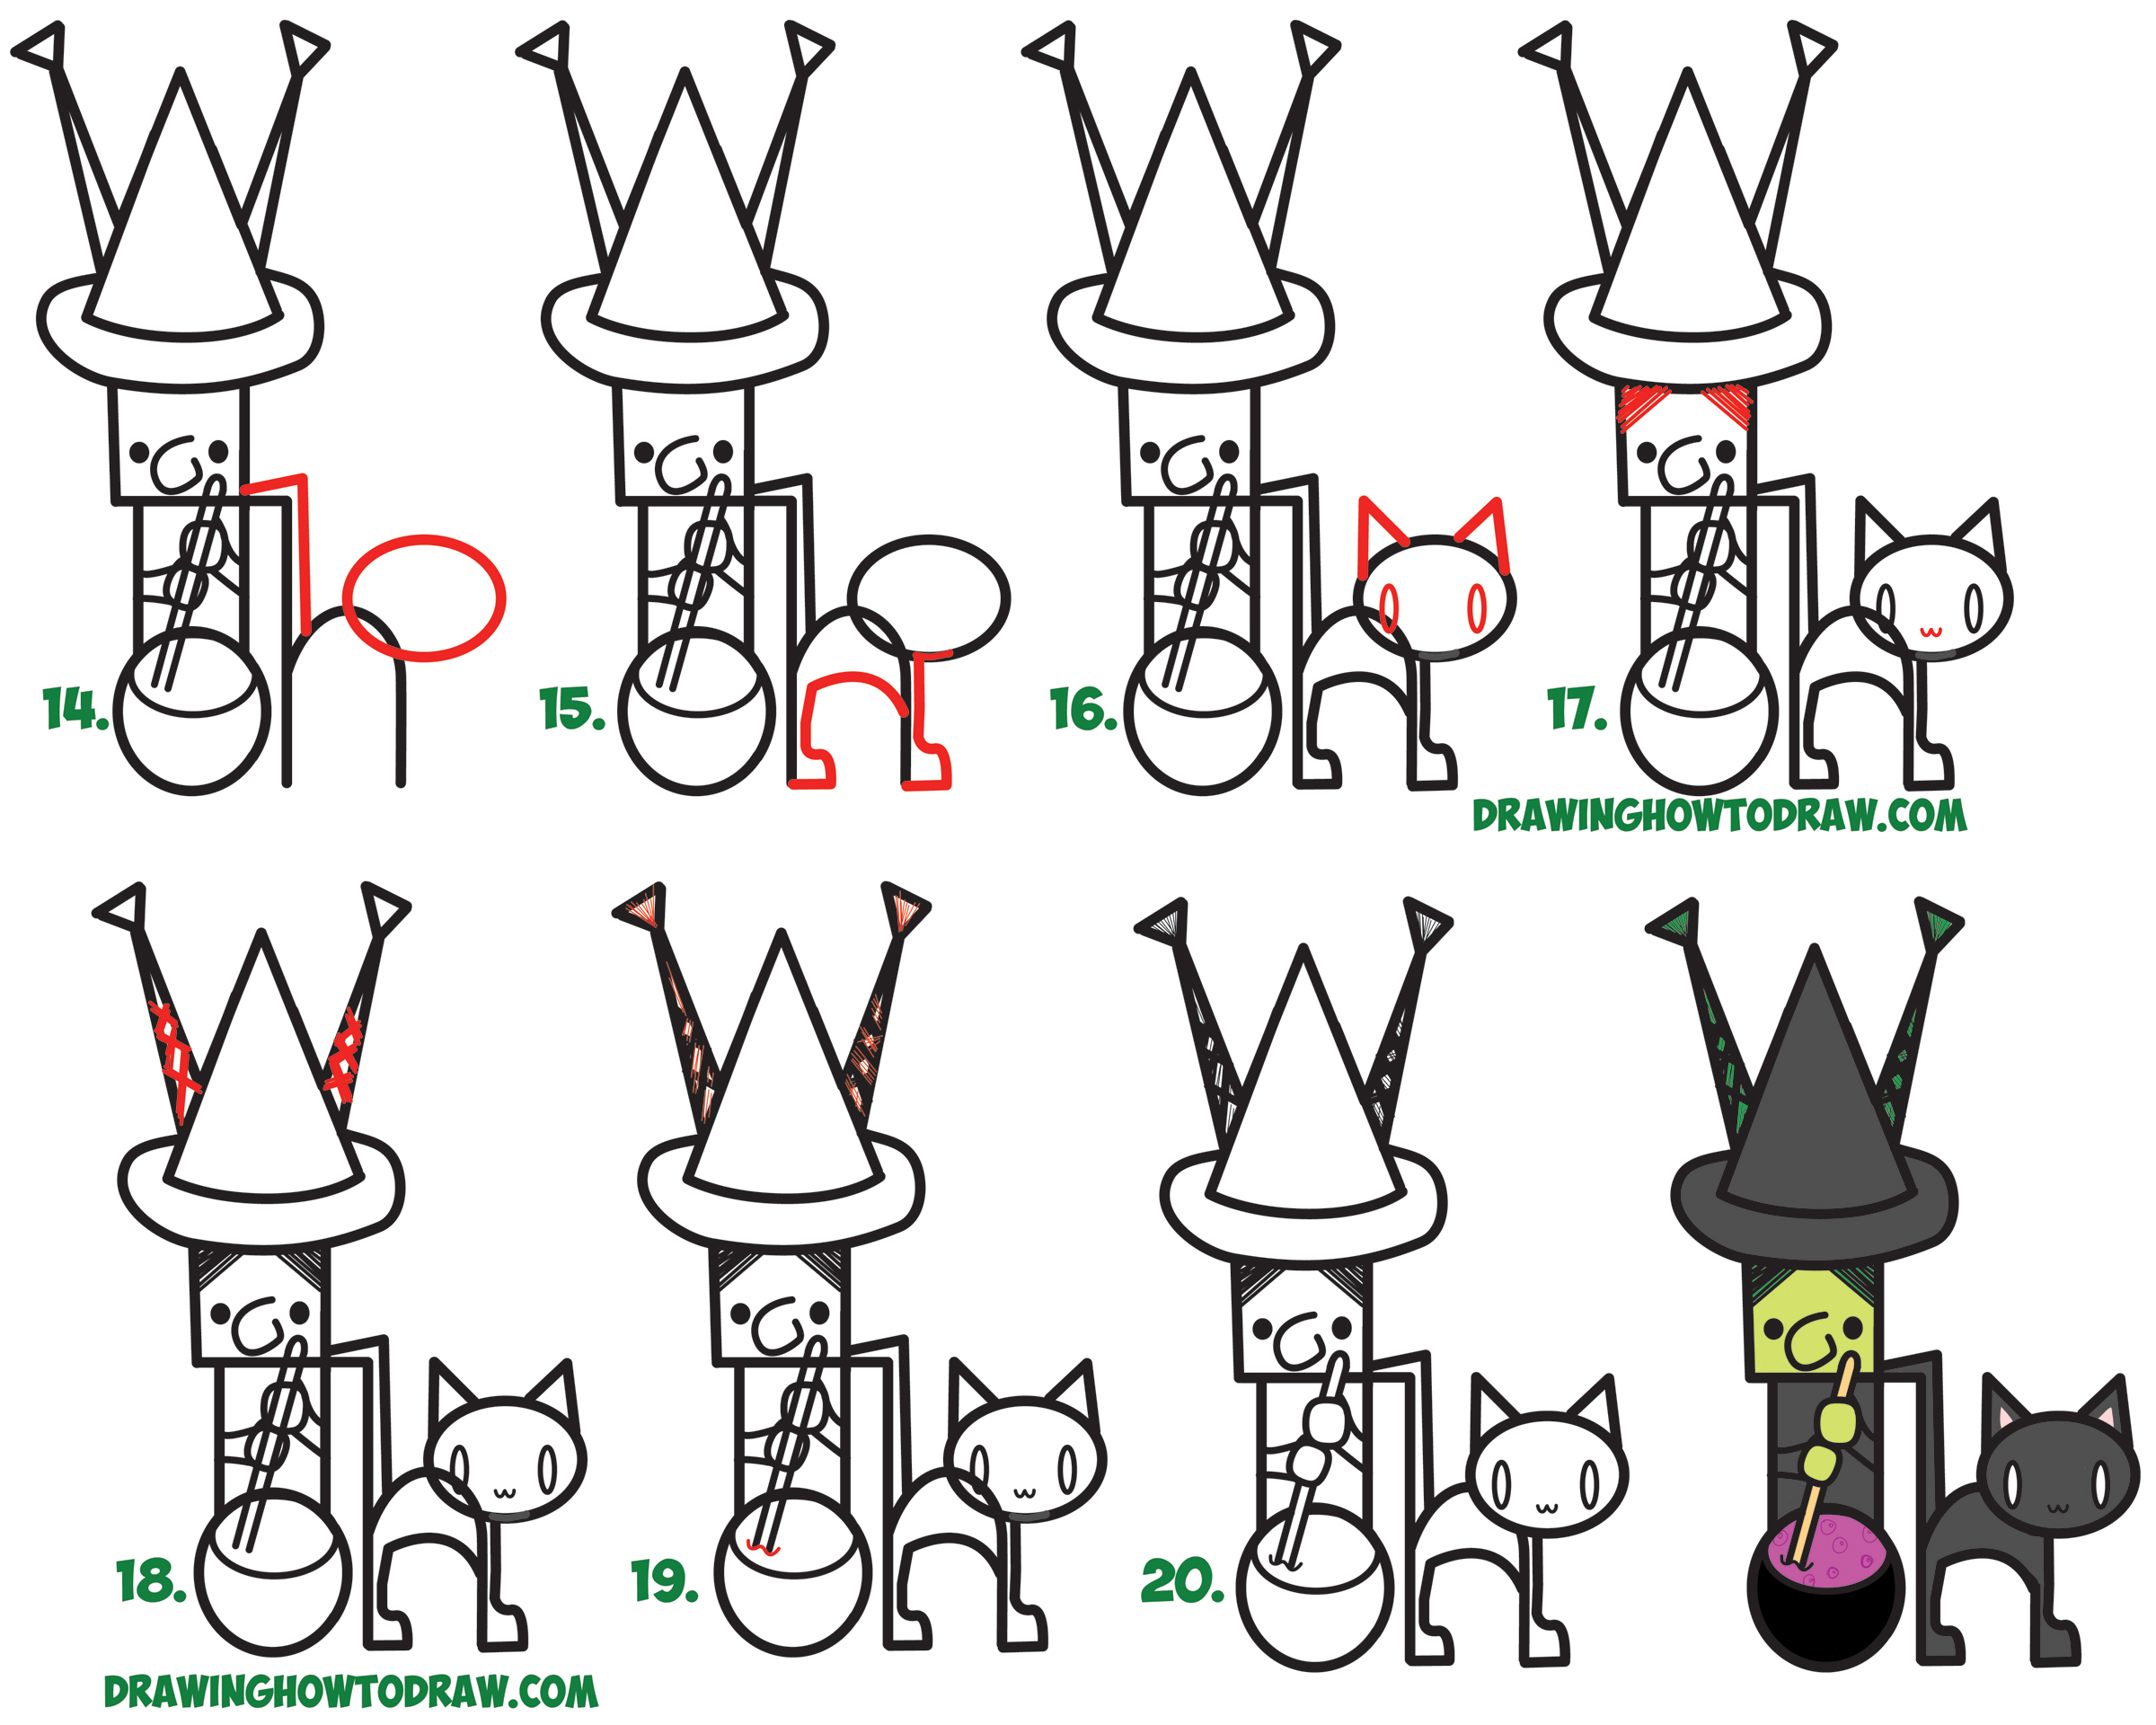 2400x1920 How To Draw Cartoon Witch And Black Cat Word Toons Easy Step By